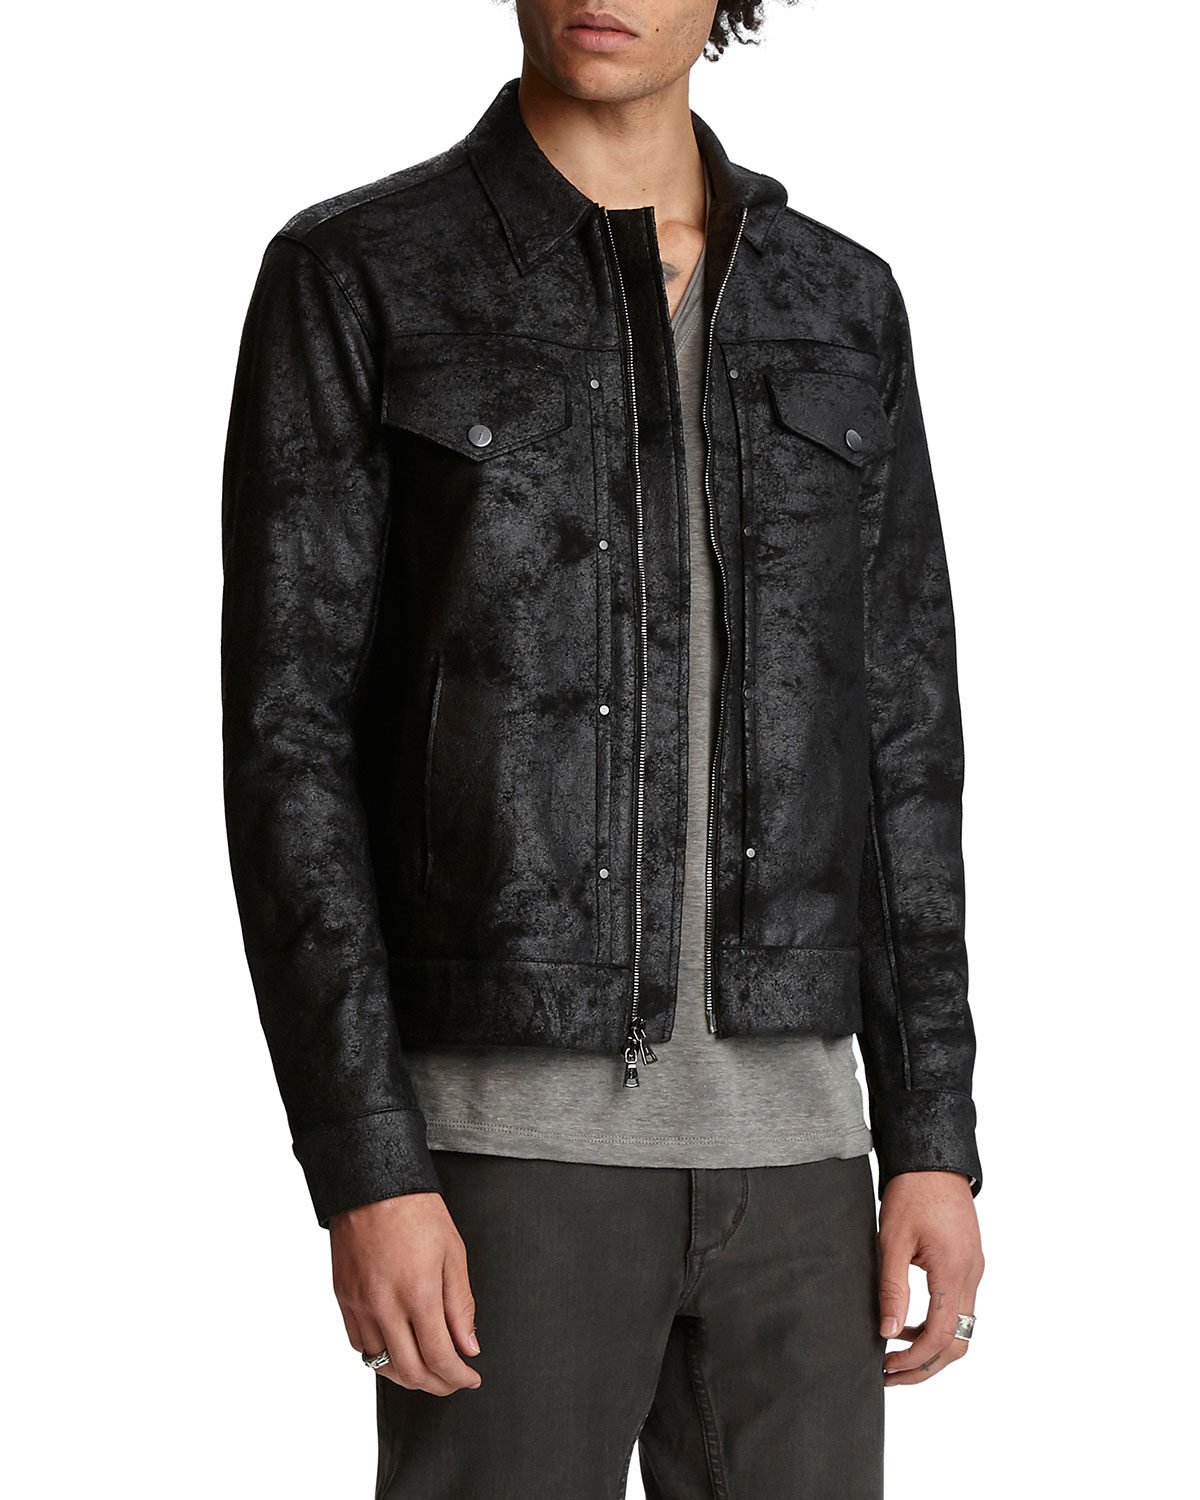 John Varvatos Men's Slim-Fit Distressed Trucker Jacket